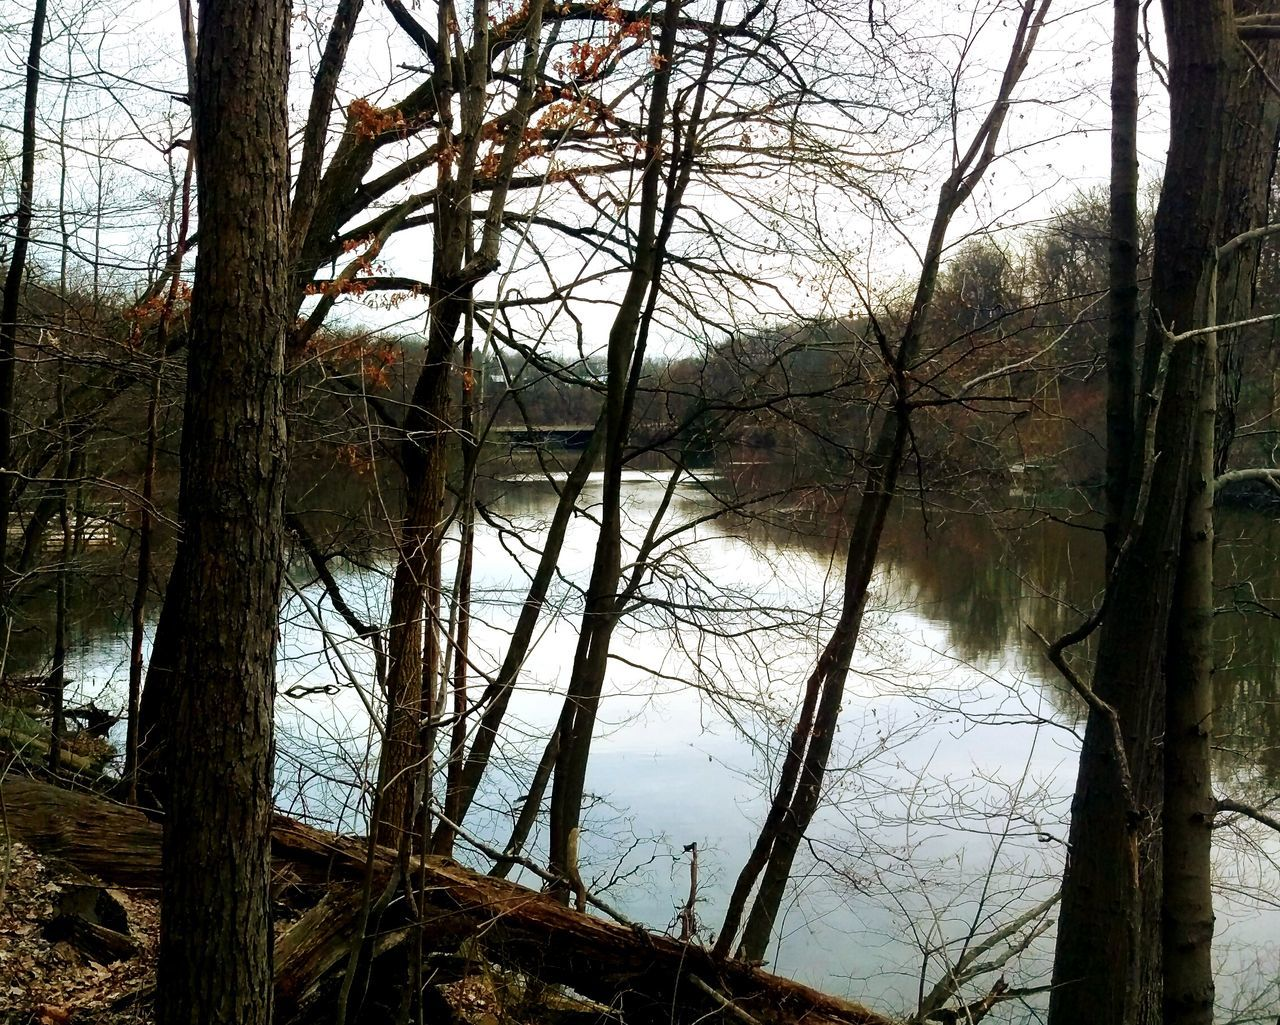 tree, tranquil scene, nature, tranquility, bare tree, water, branch, no people, day, forest, tree trunk, outdoors, river, scenics, landscape, beauty in nature, sky